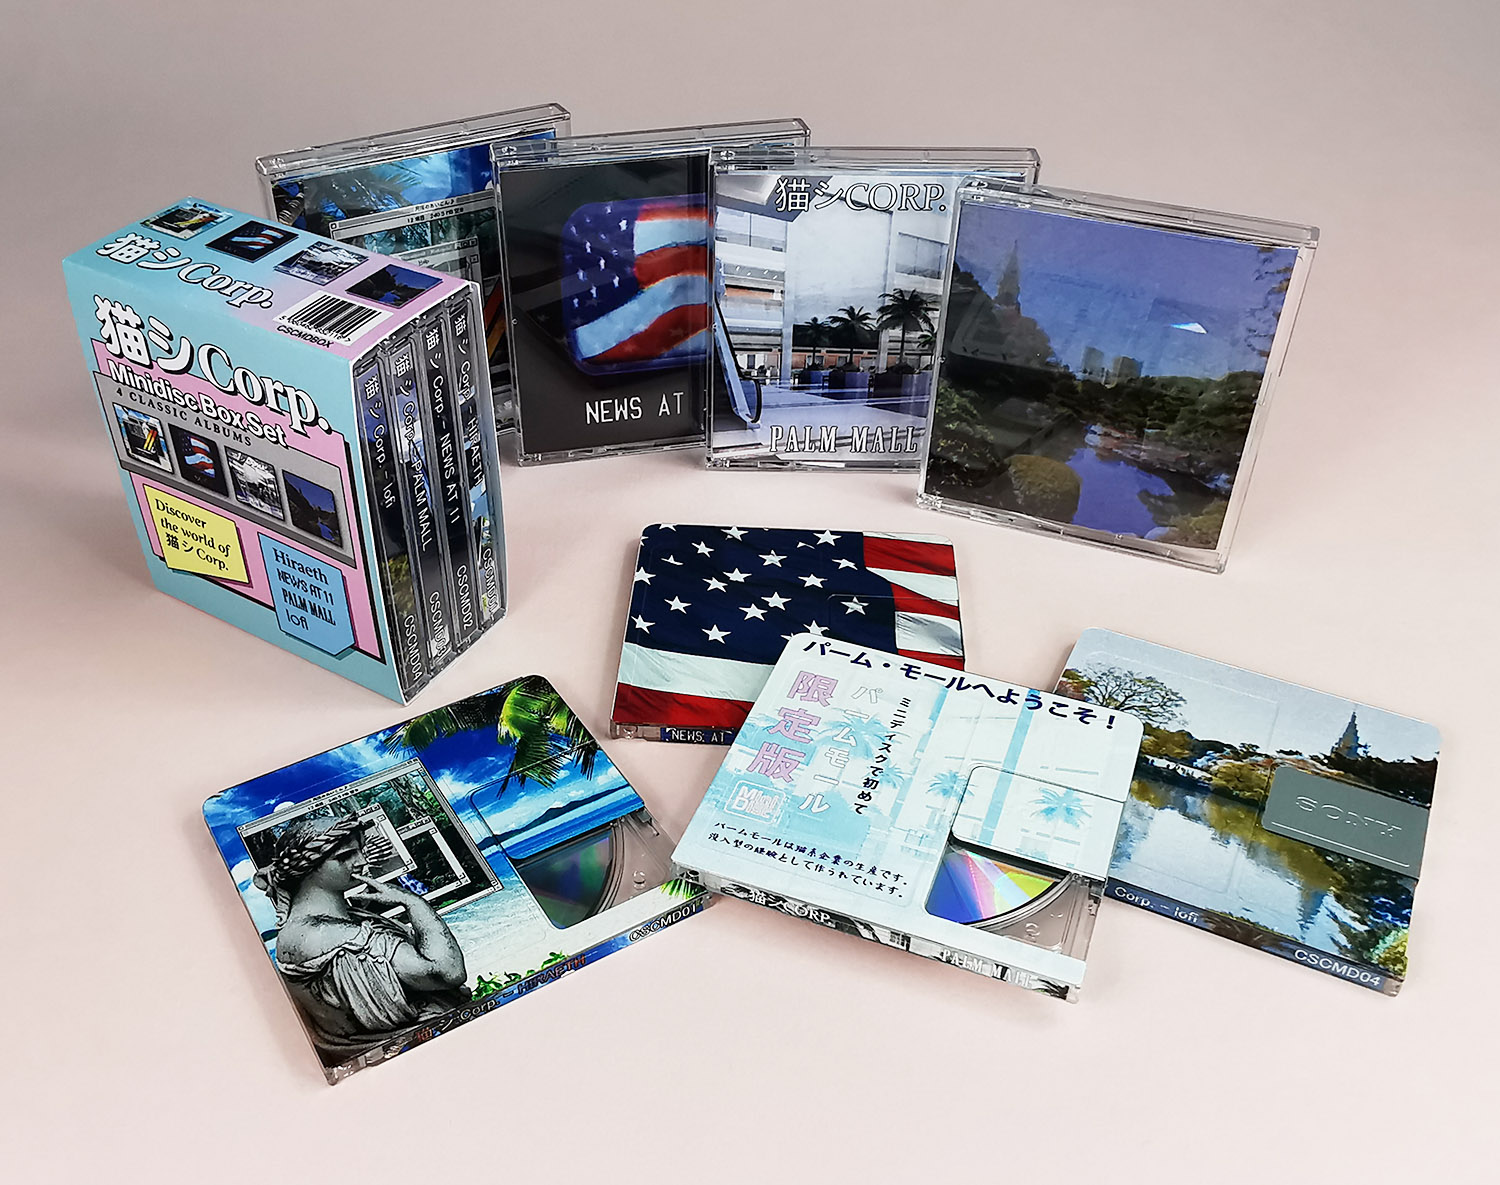 CatCorp MiniDisc box set with four MiniDiscs in jewel cases within an outer O-card